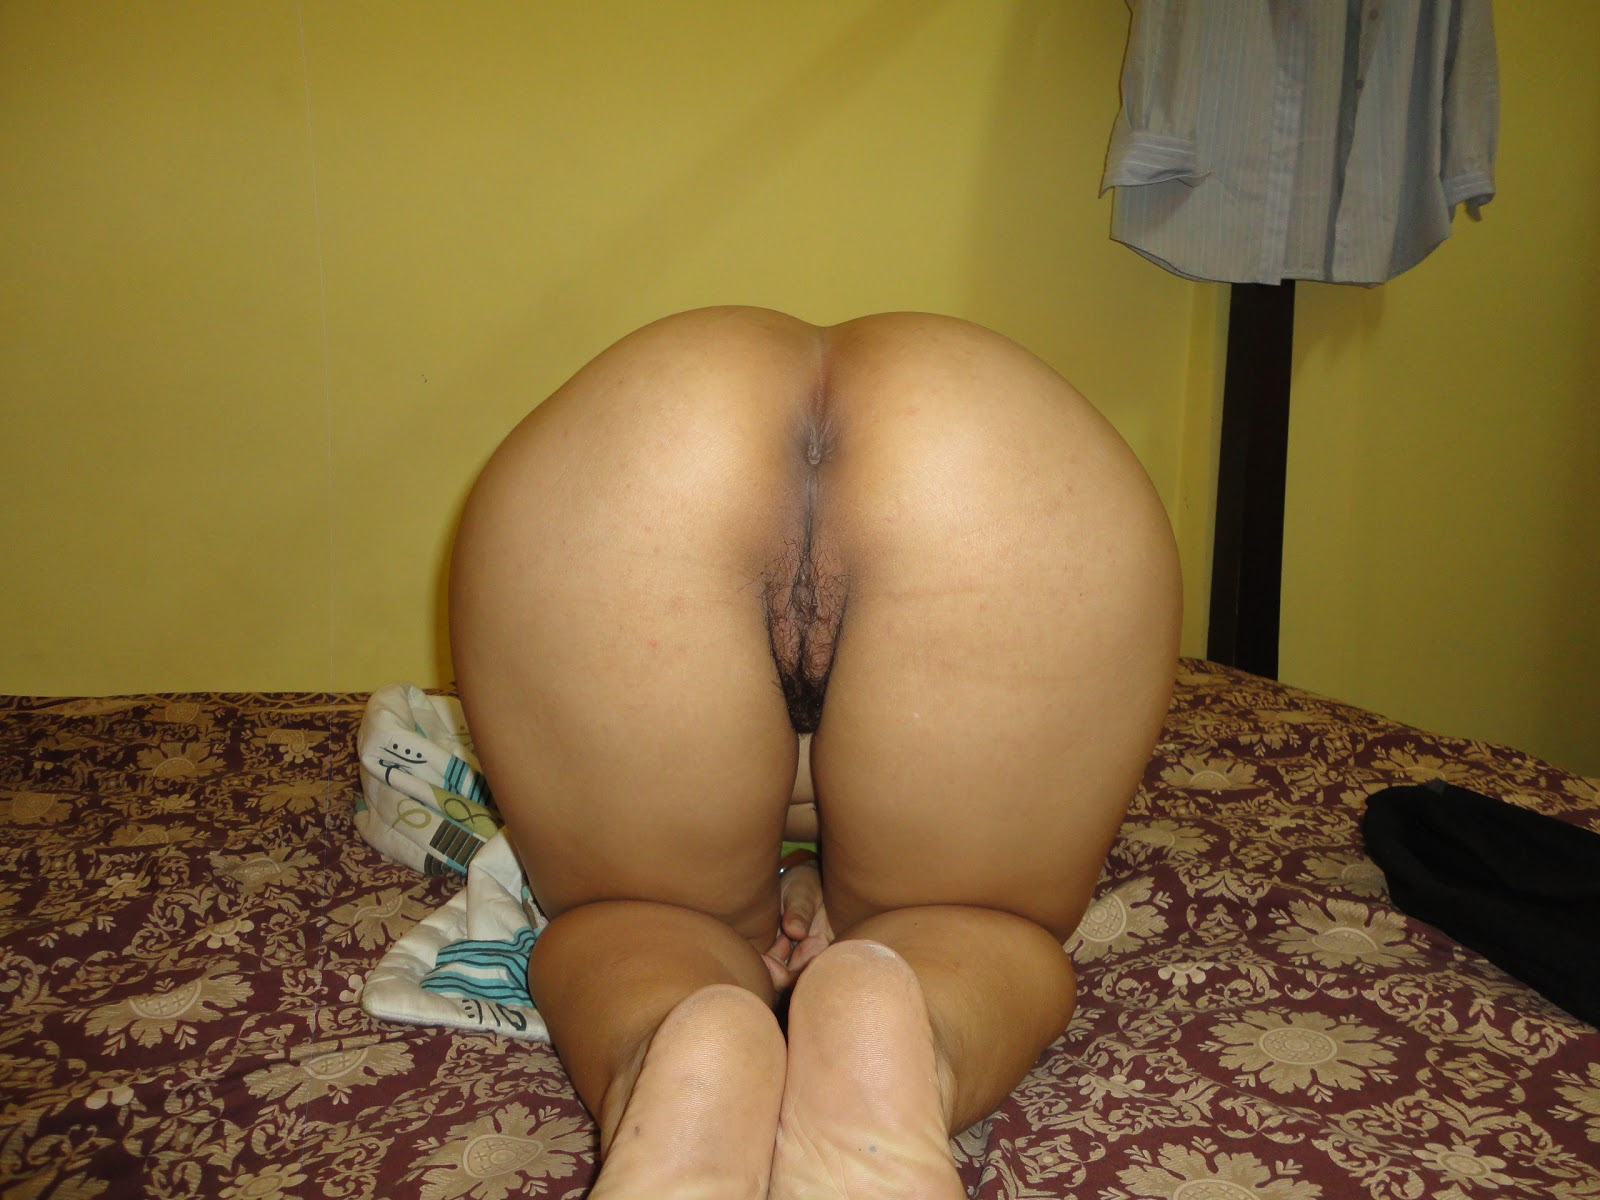 Milf outside pussy flash